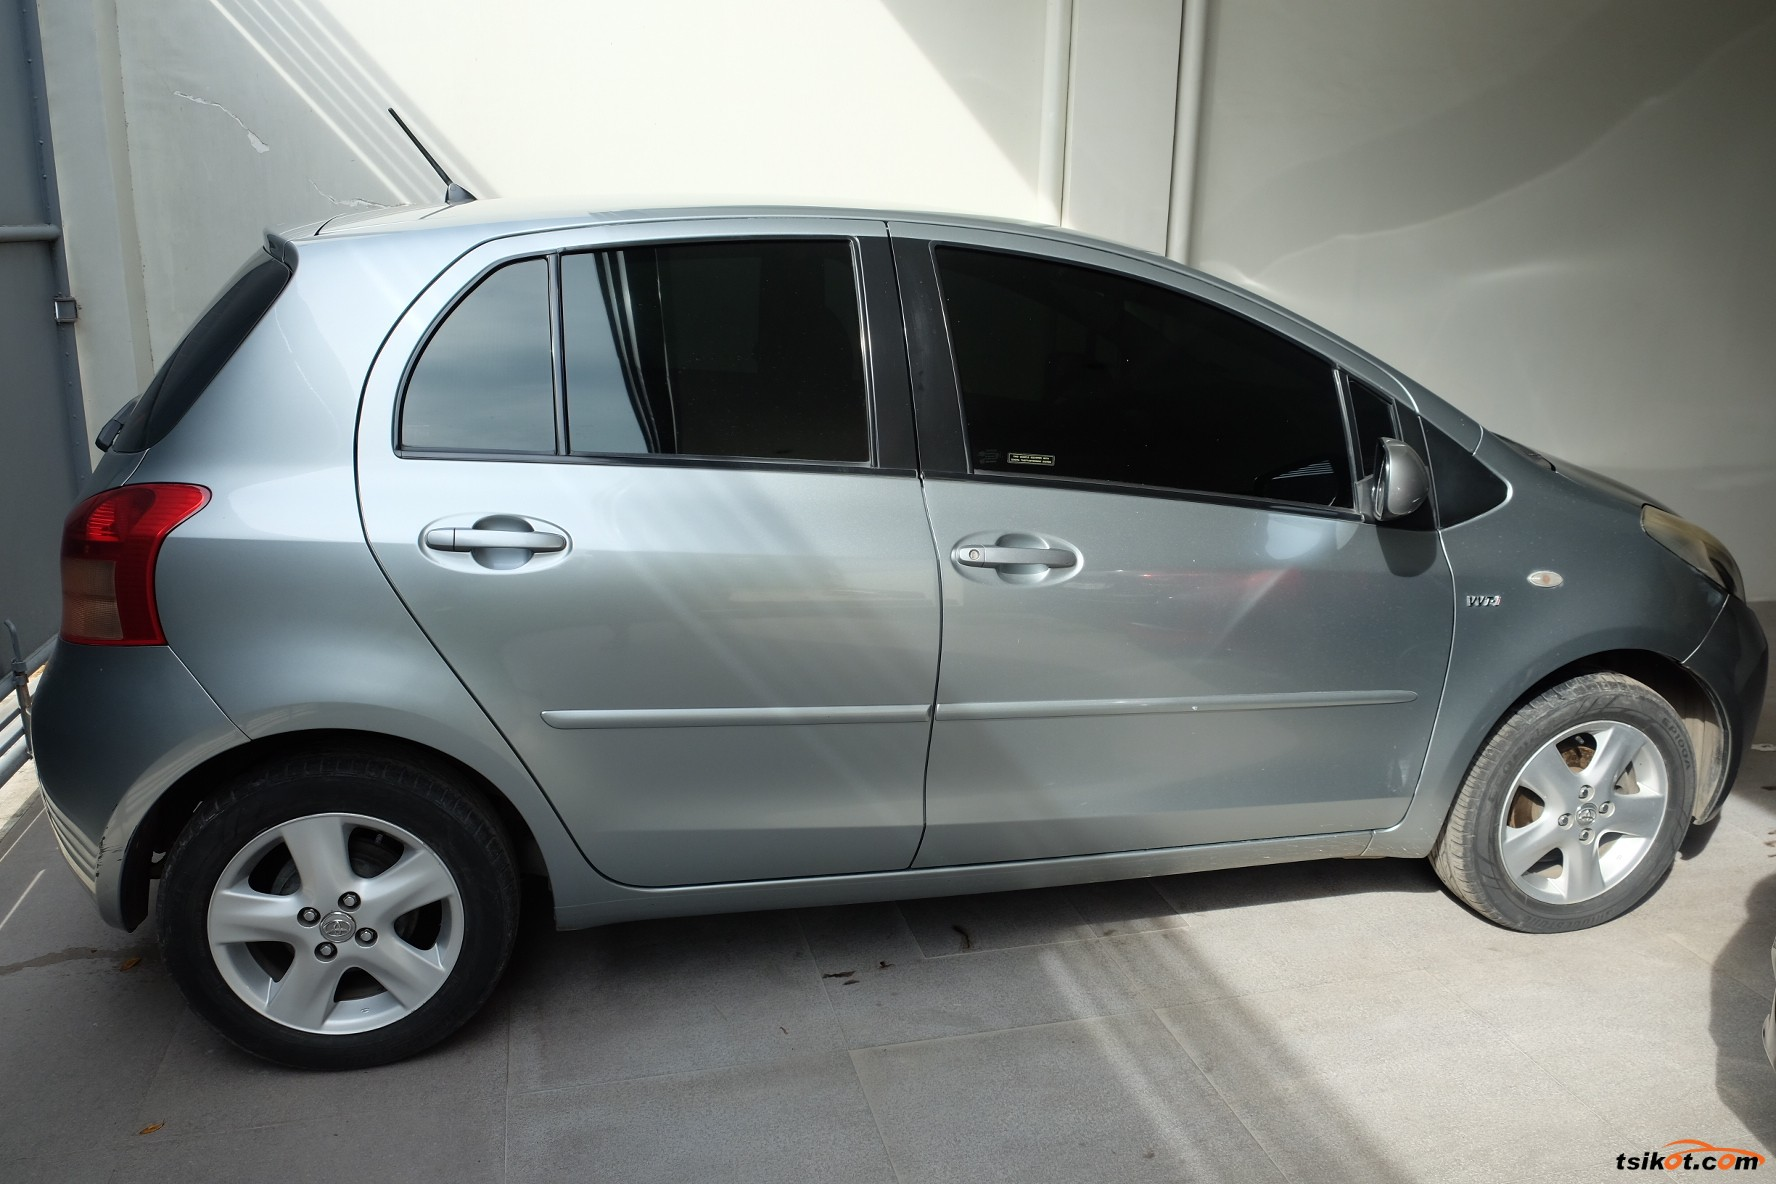 toyota yaris 2007 car for sale central visayas philippines. Black Bedroom Furniture Sets. Home Design Ideas